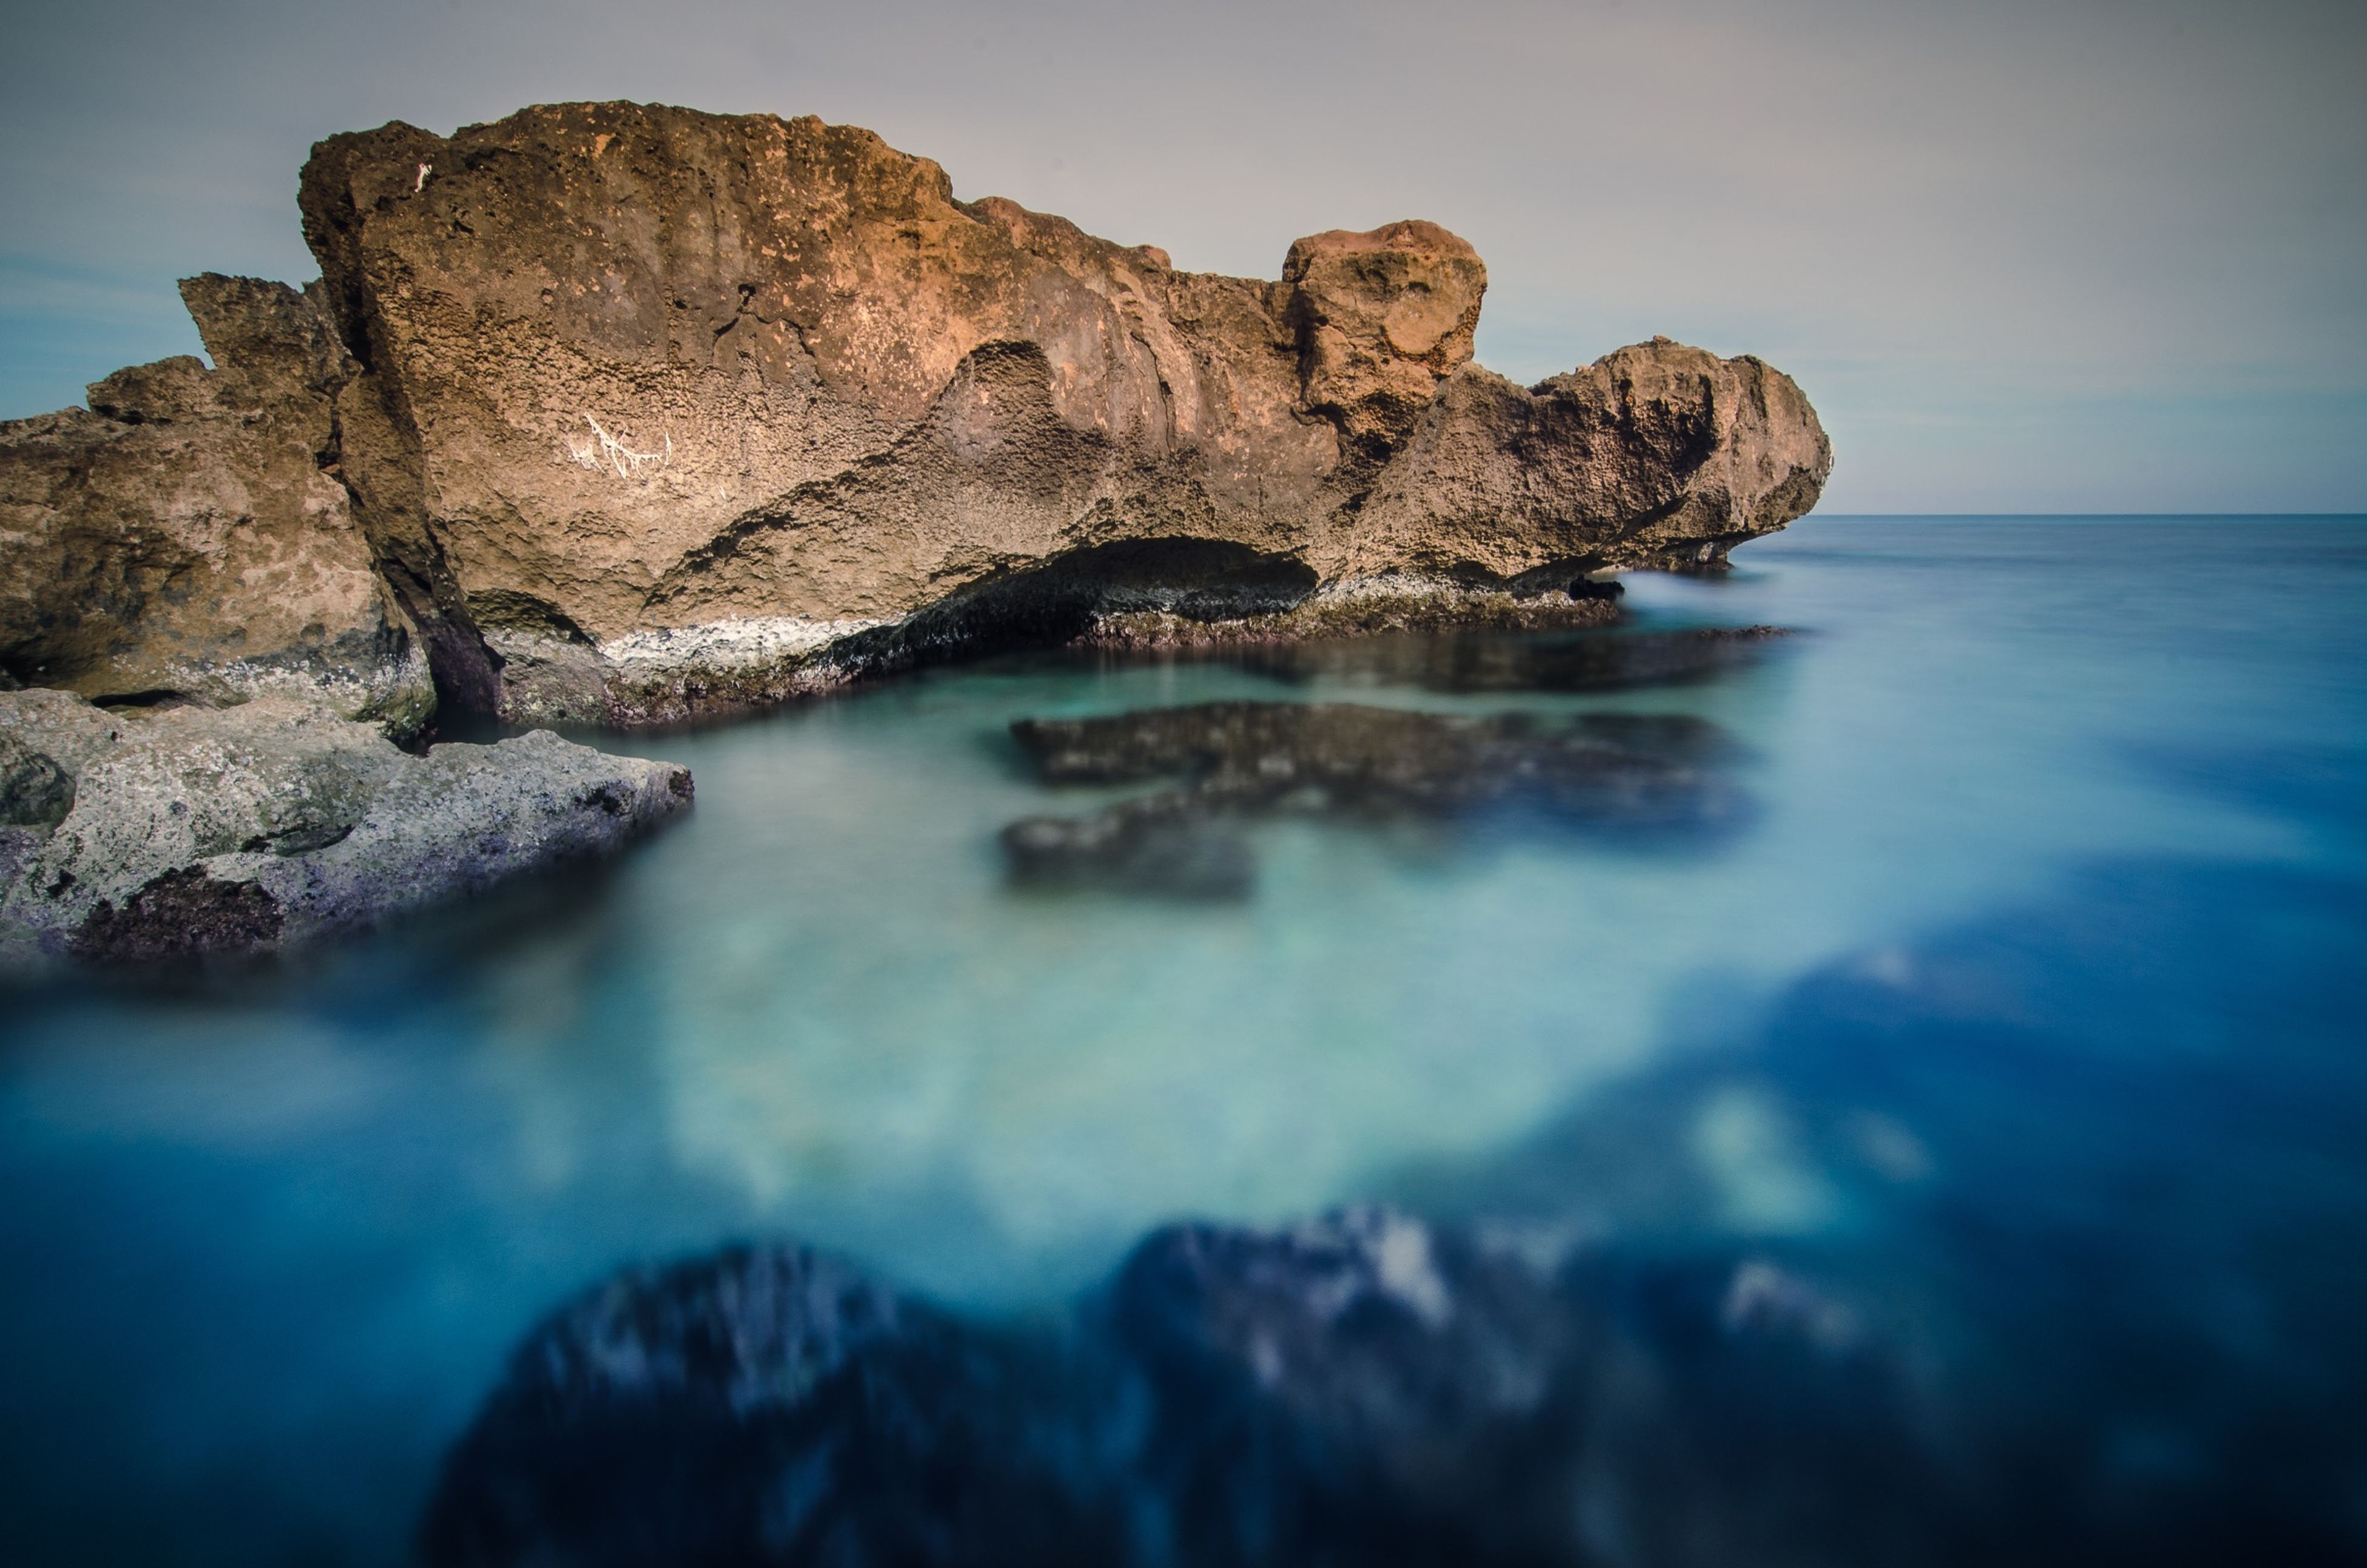 water, sea, rock - object, rock formation, beauty in nature, scenics, tranquil scene, tranquility, nature, sky, rock, horizon over water, beach, idyllic, cliff, geology, outdoors, reflection, shore, eroded